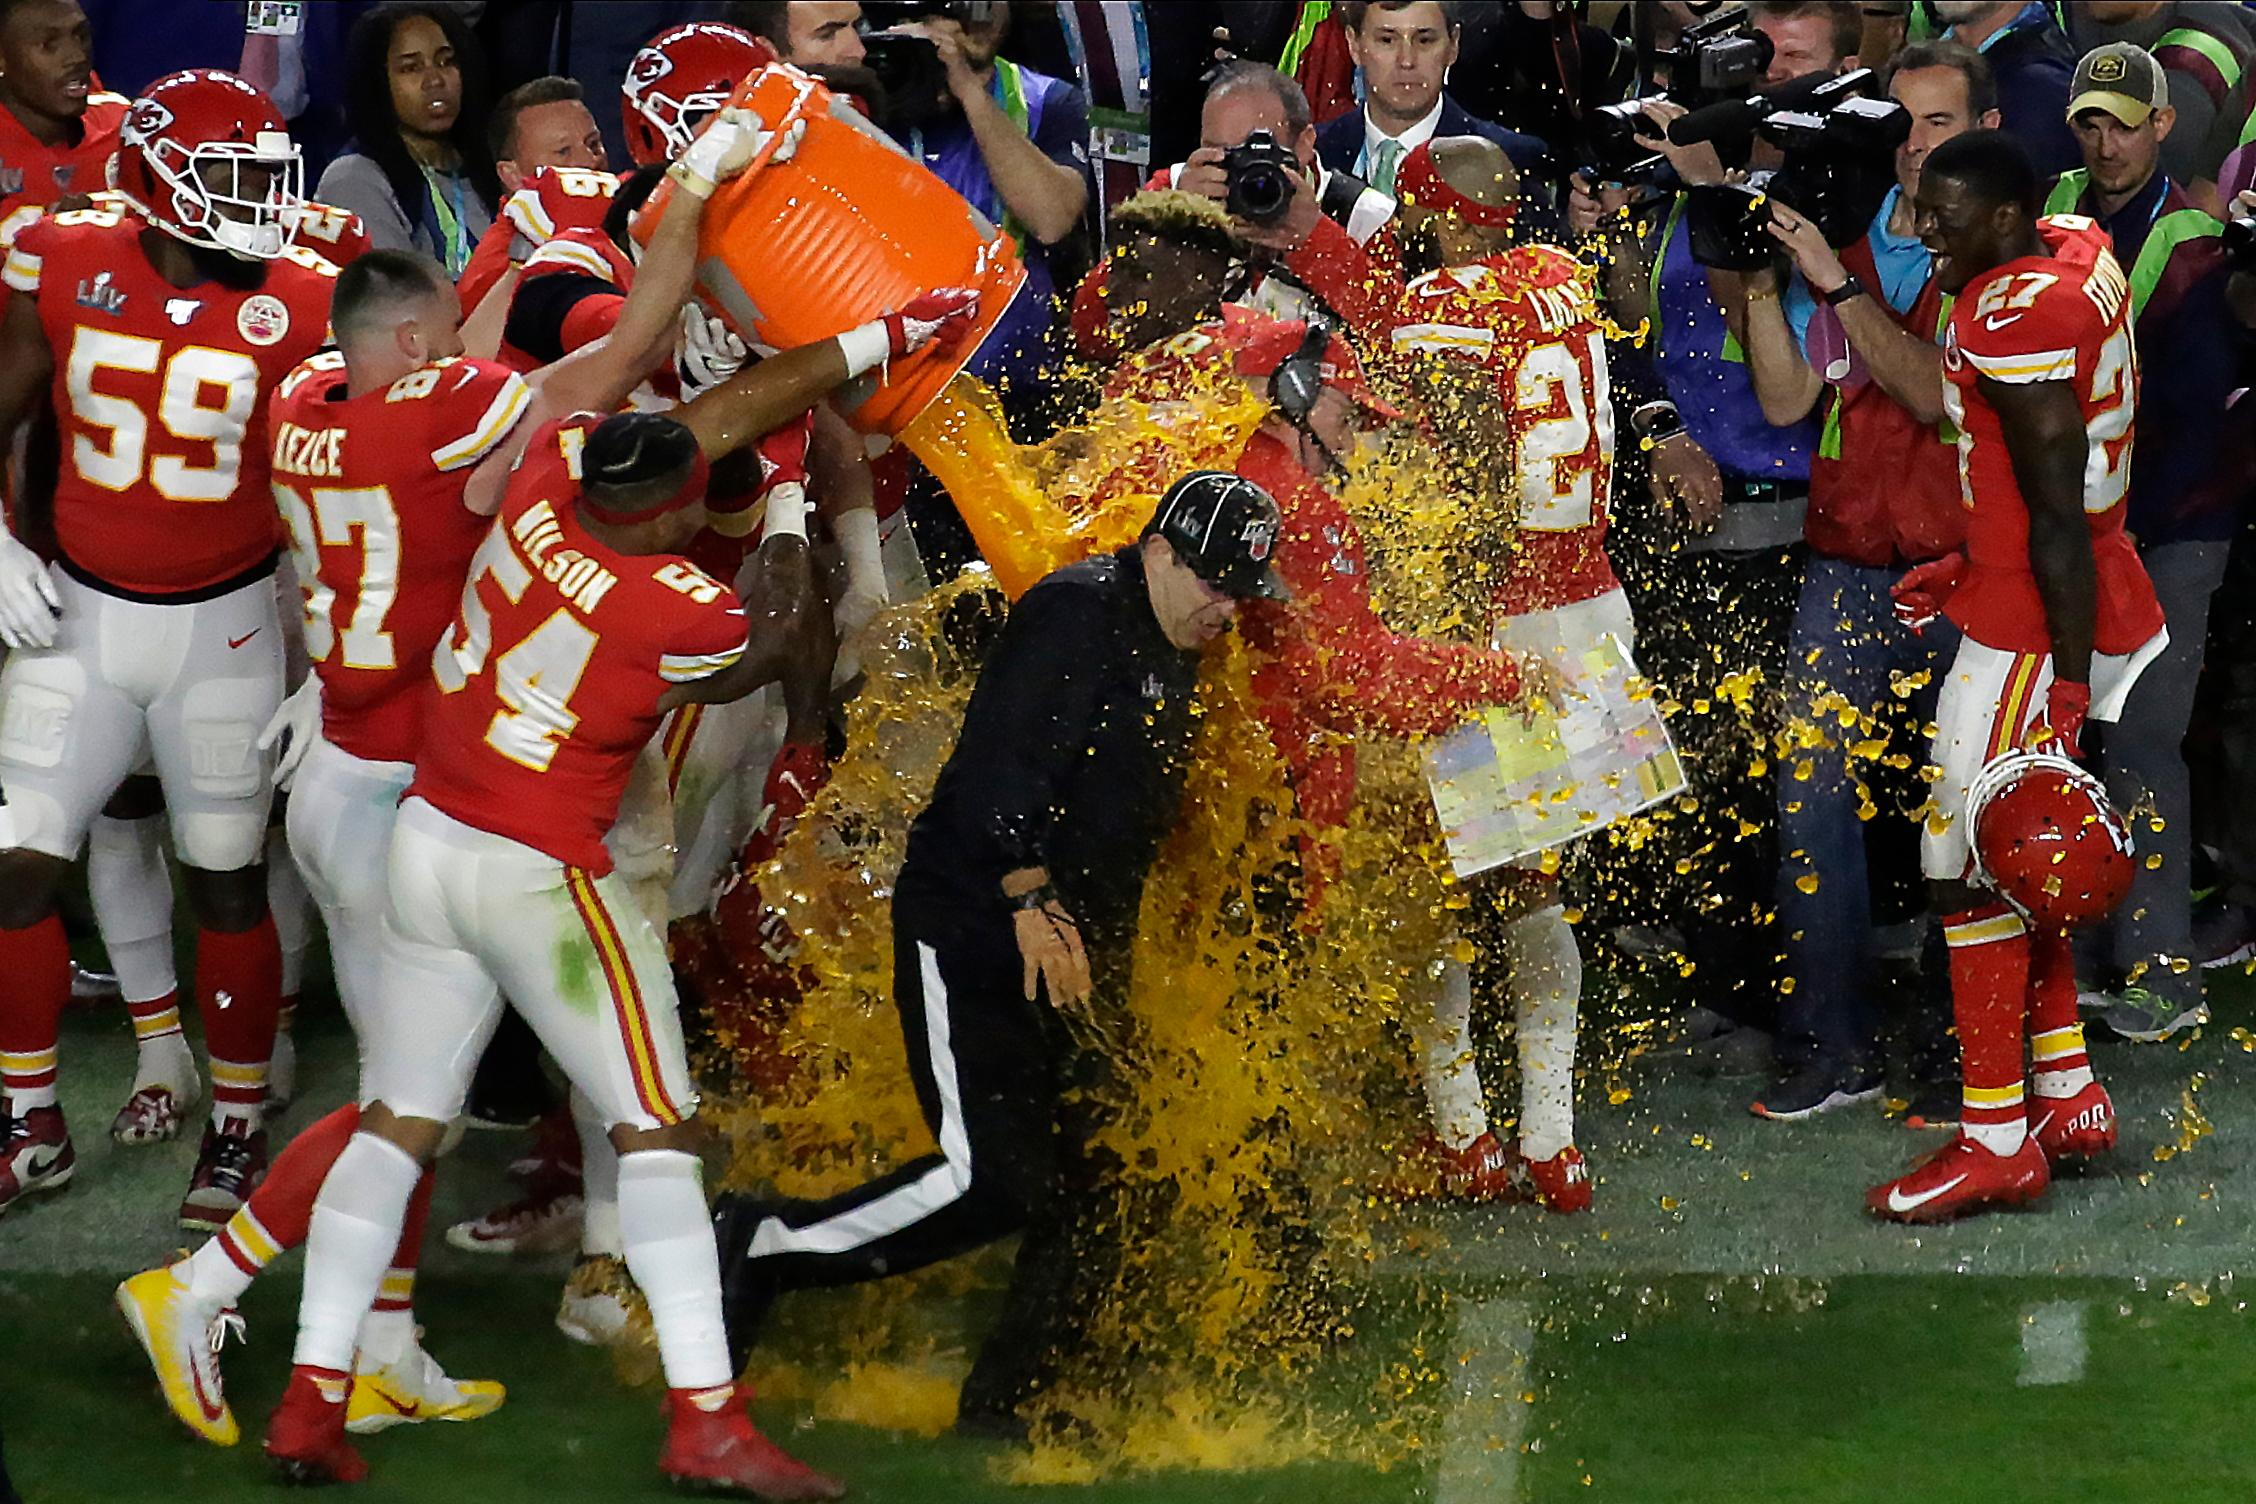 Kansan City Chiefs' players pour a cooler of Gatorade on head coach Andy Reid and members of the coaching staff, after winning the NFL Super Bowl 54 football game Sunday, Feb. 2, 2020, in Miami Gardens, Fla.{ } (AP Photo/Brynn Anderson)